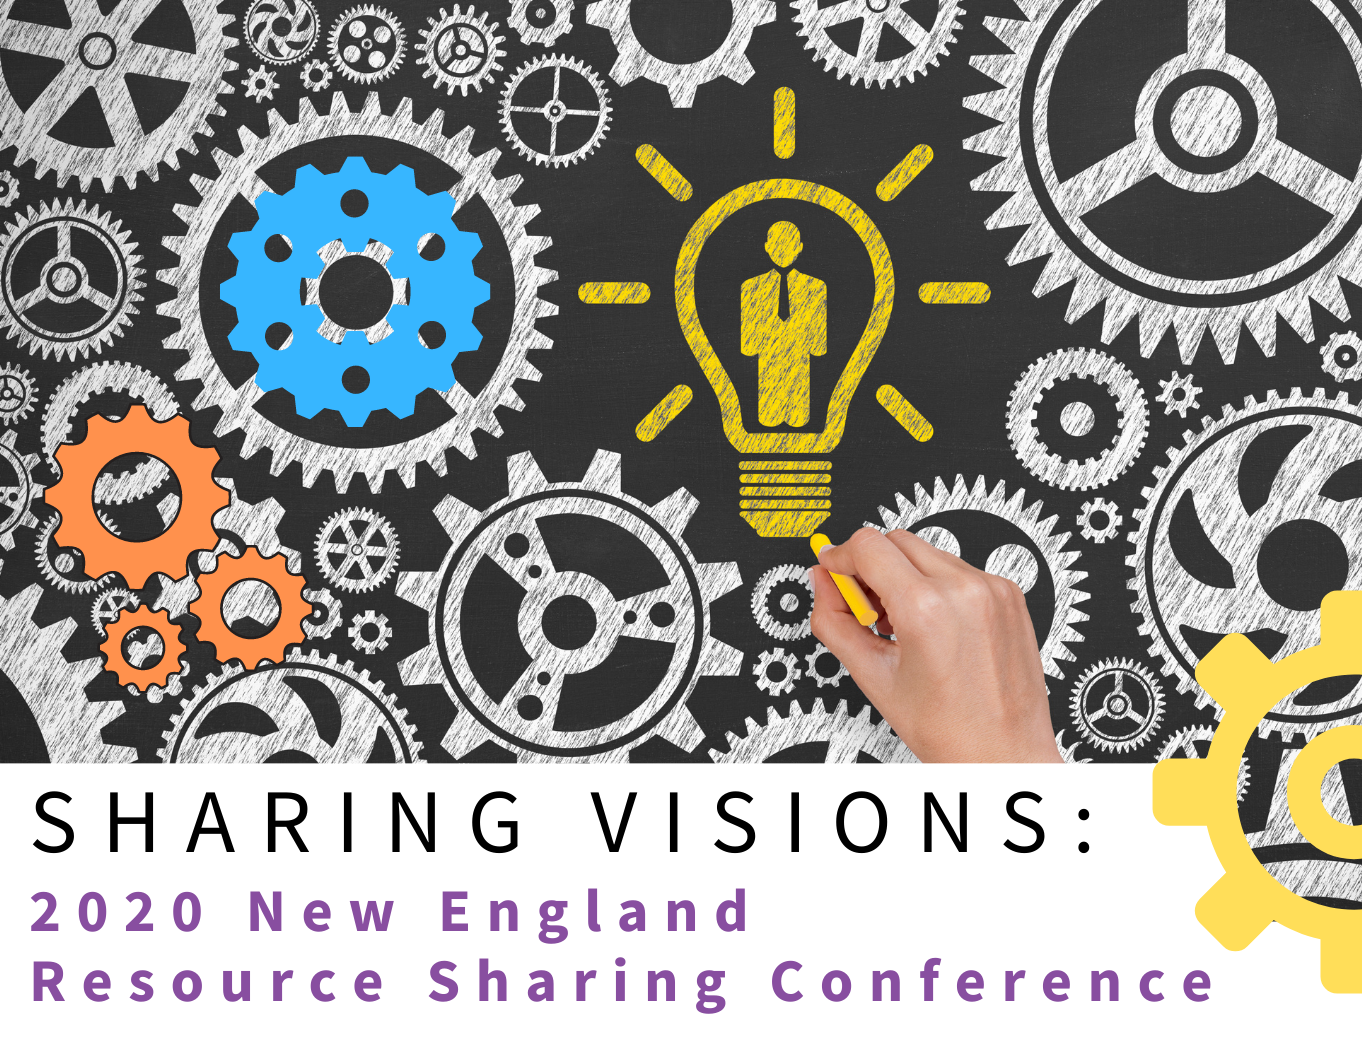 Sharing Visions: New England Resource Sharing Conference